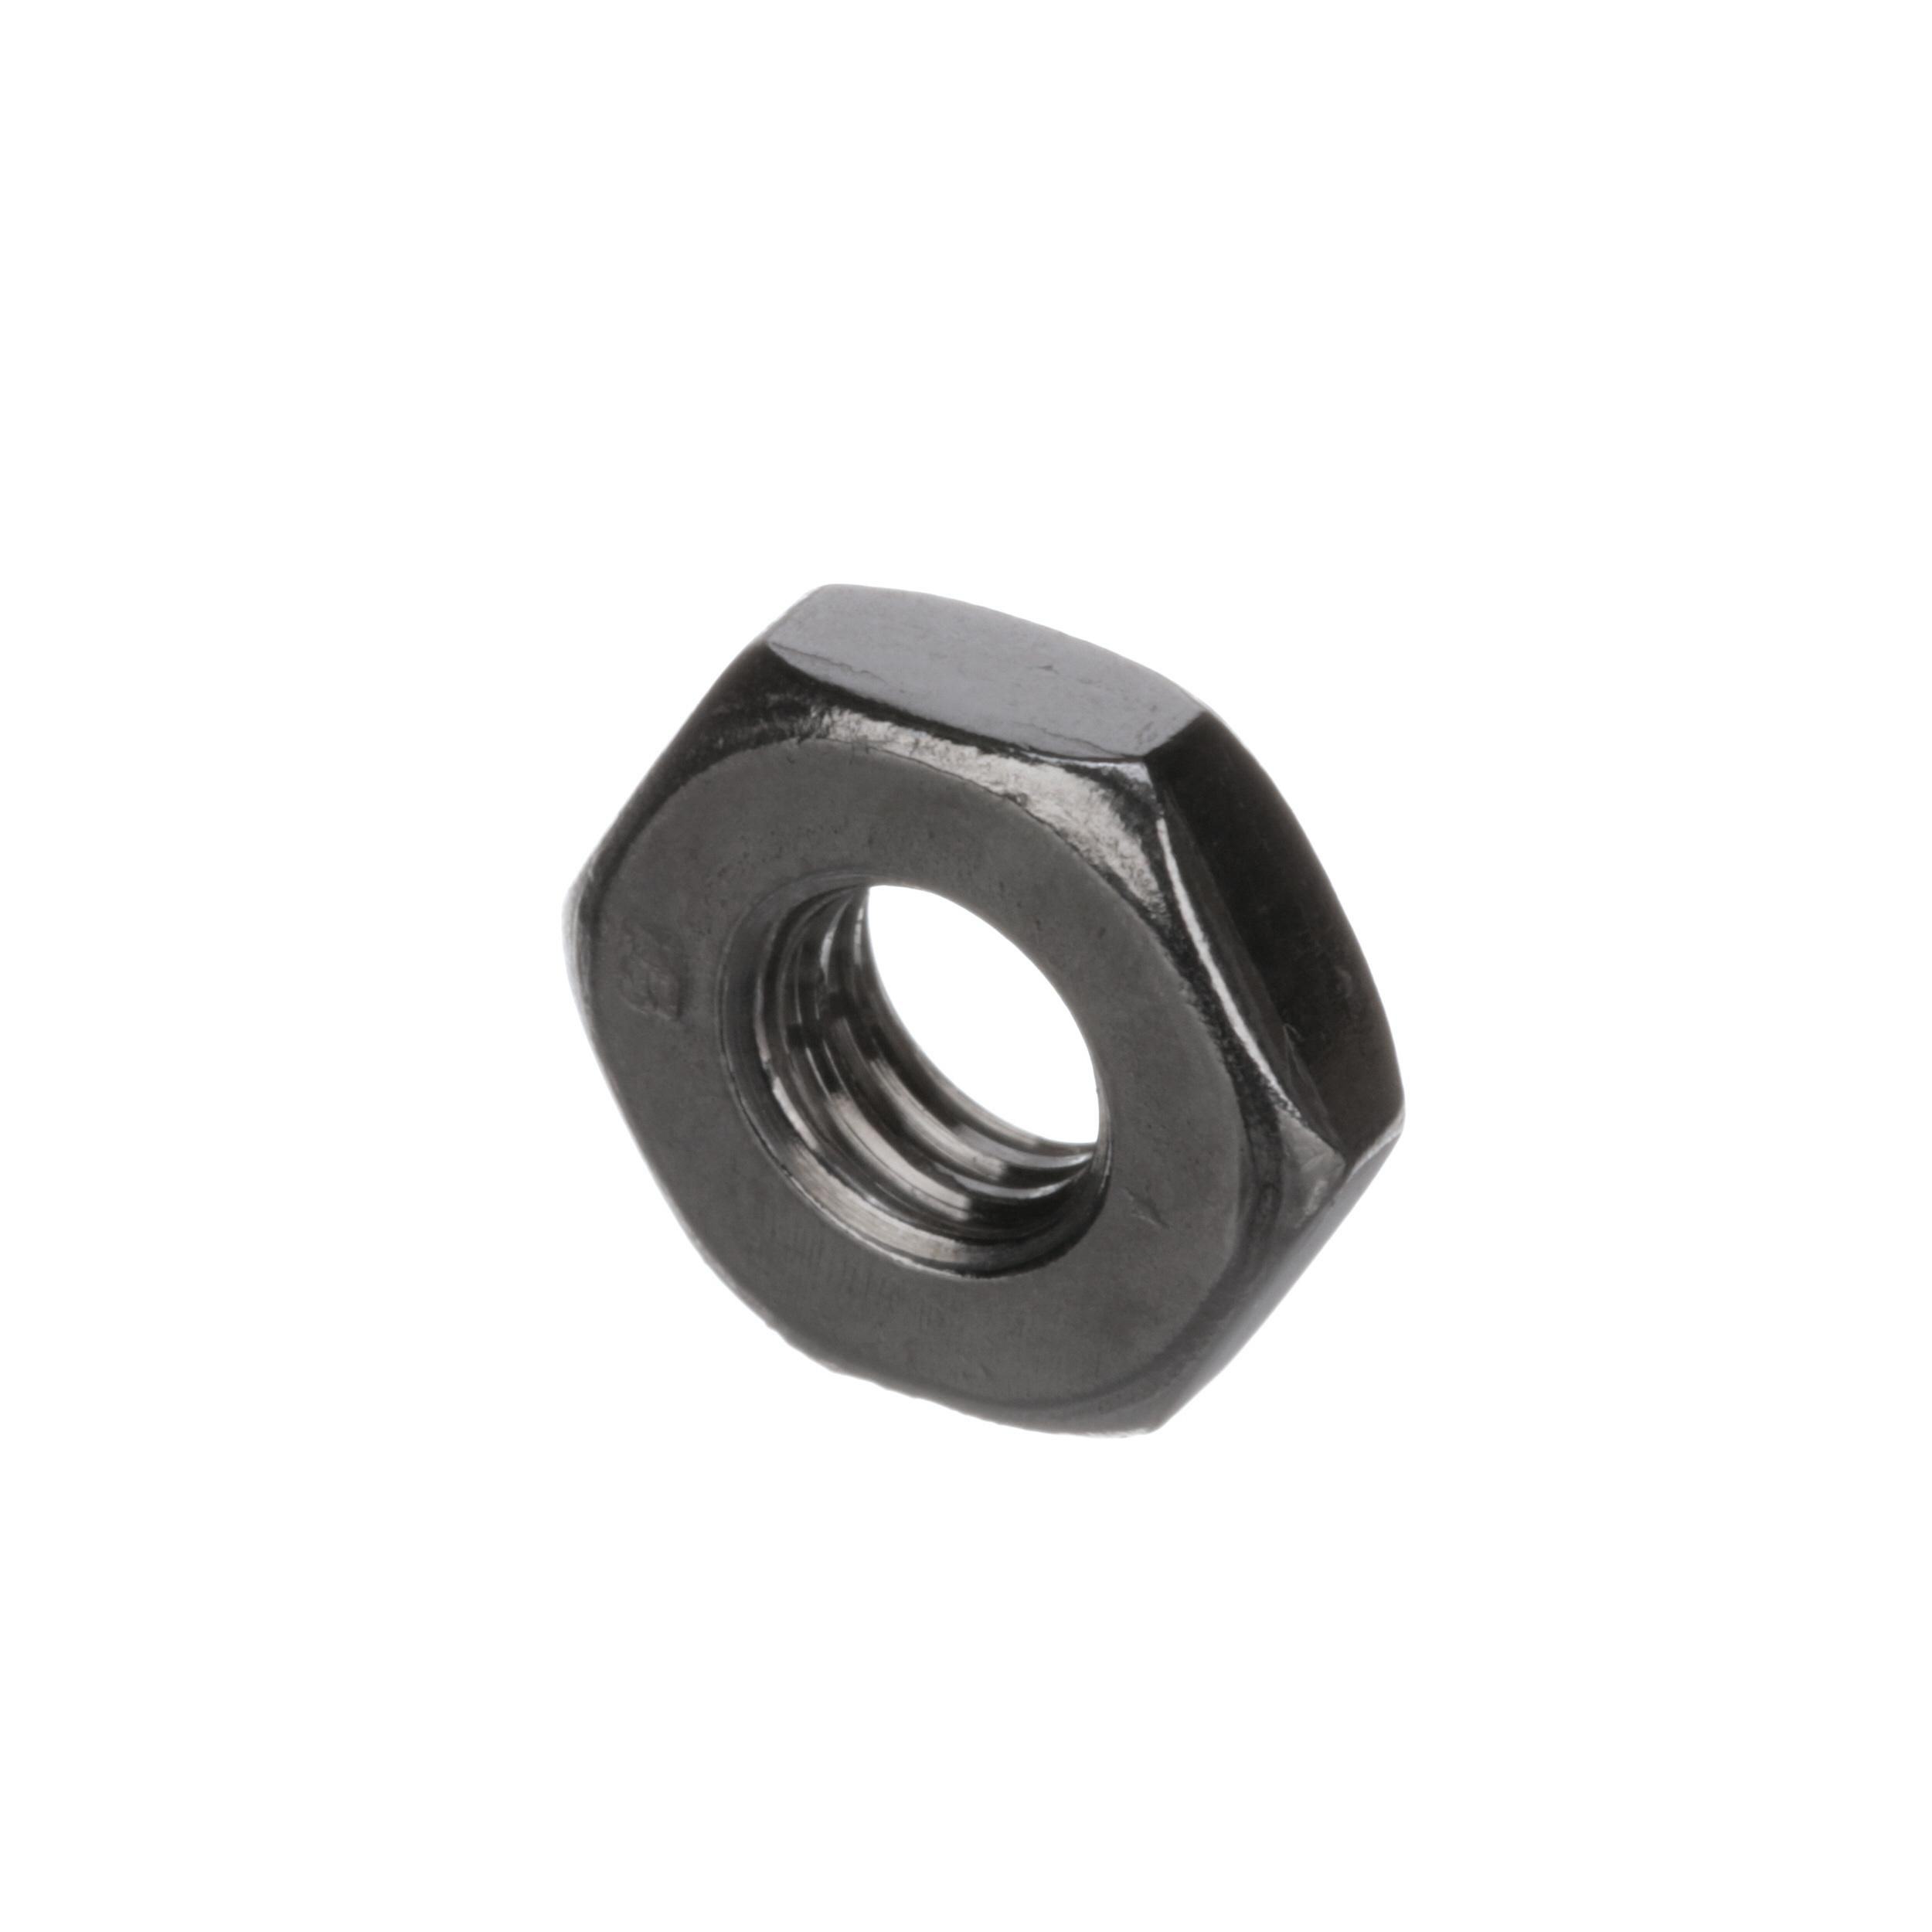 WELLS HEX NUT